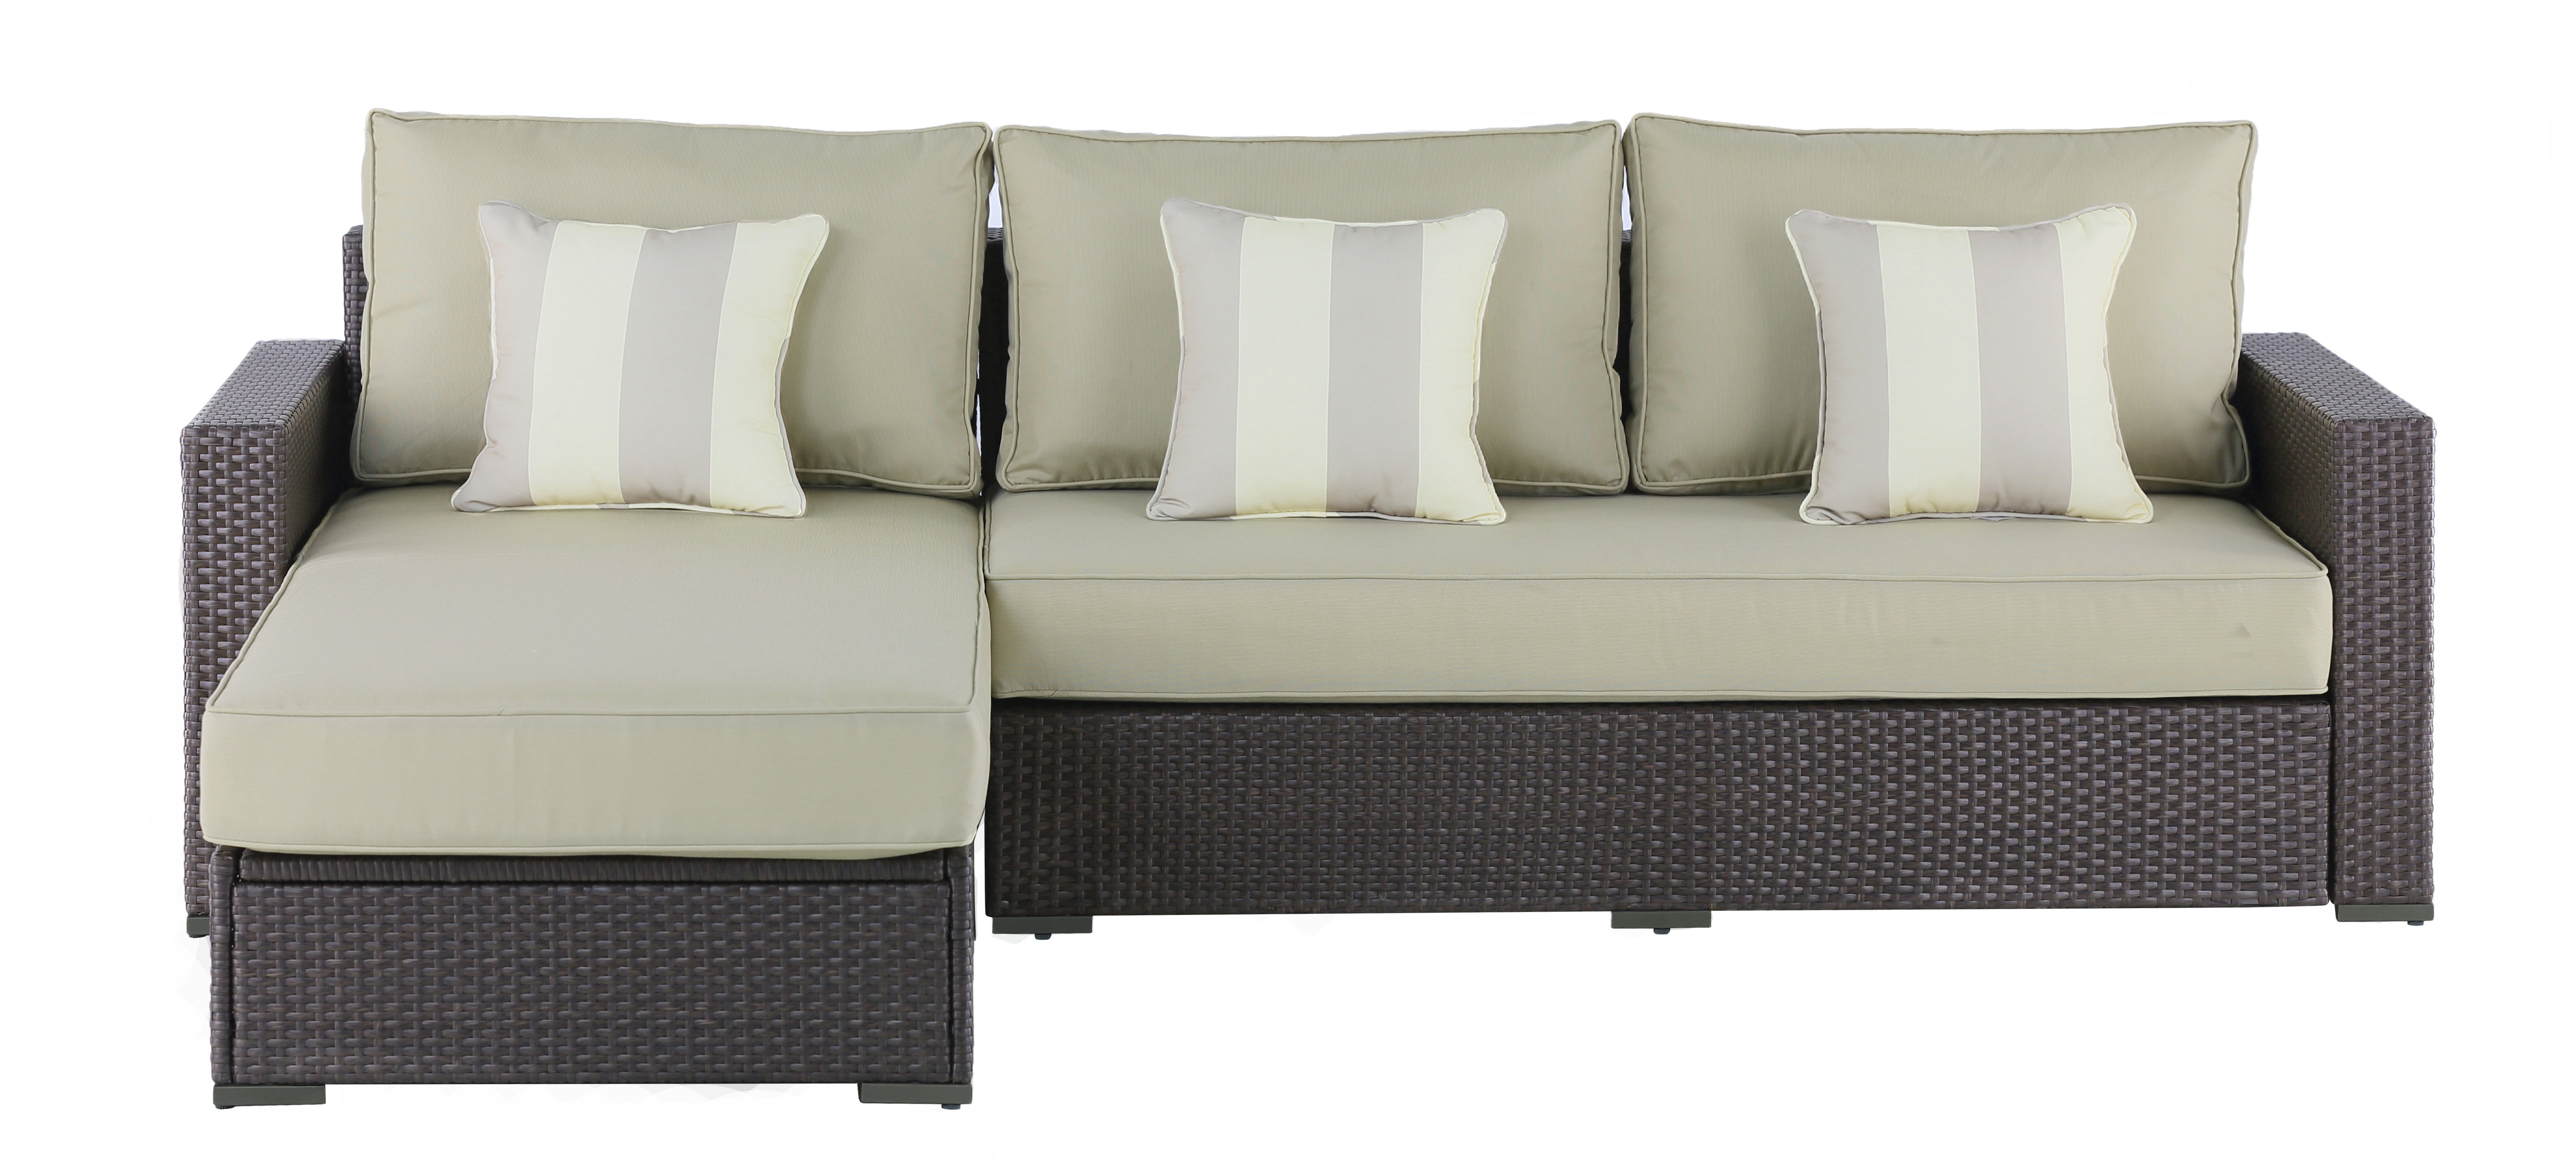 Laguna Sectional With Cushions With Fashionable Laguna Outdoor Sofas With Cushions (View 12 of 20)